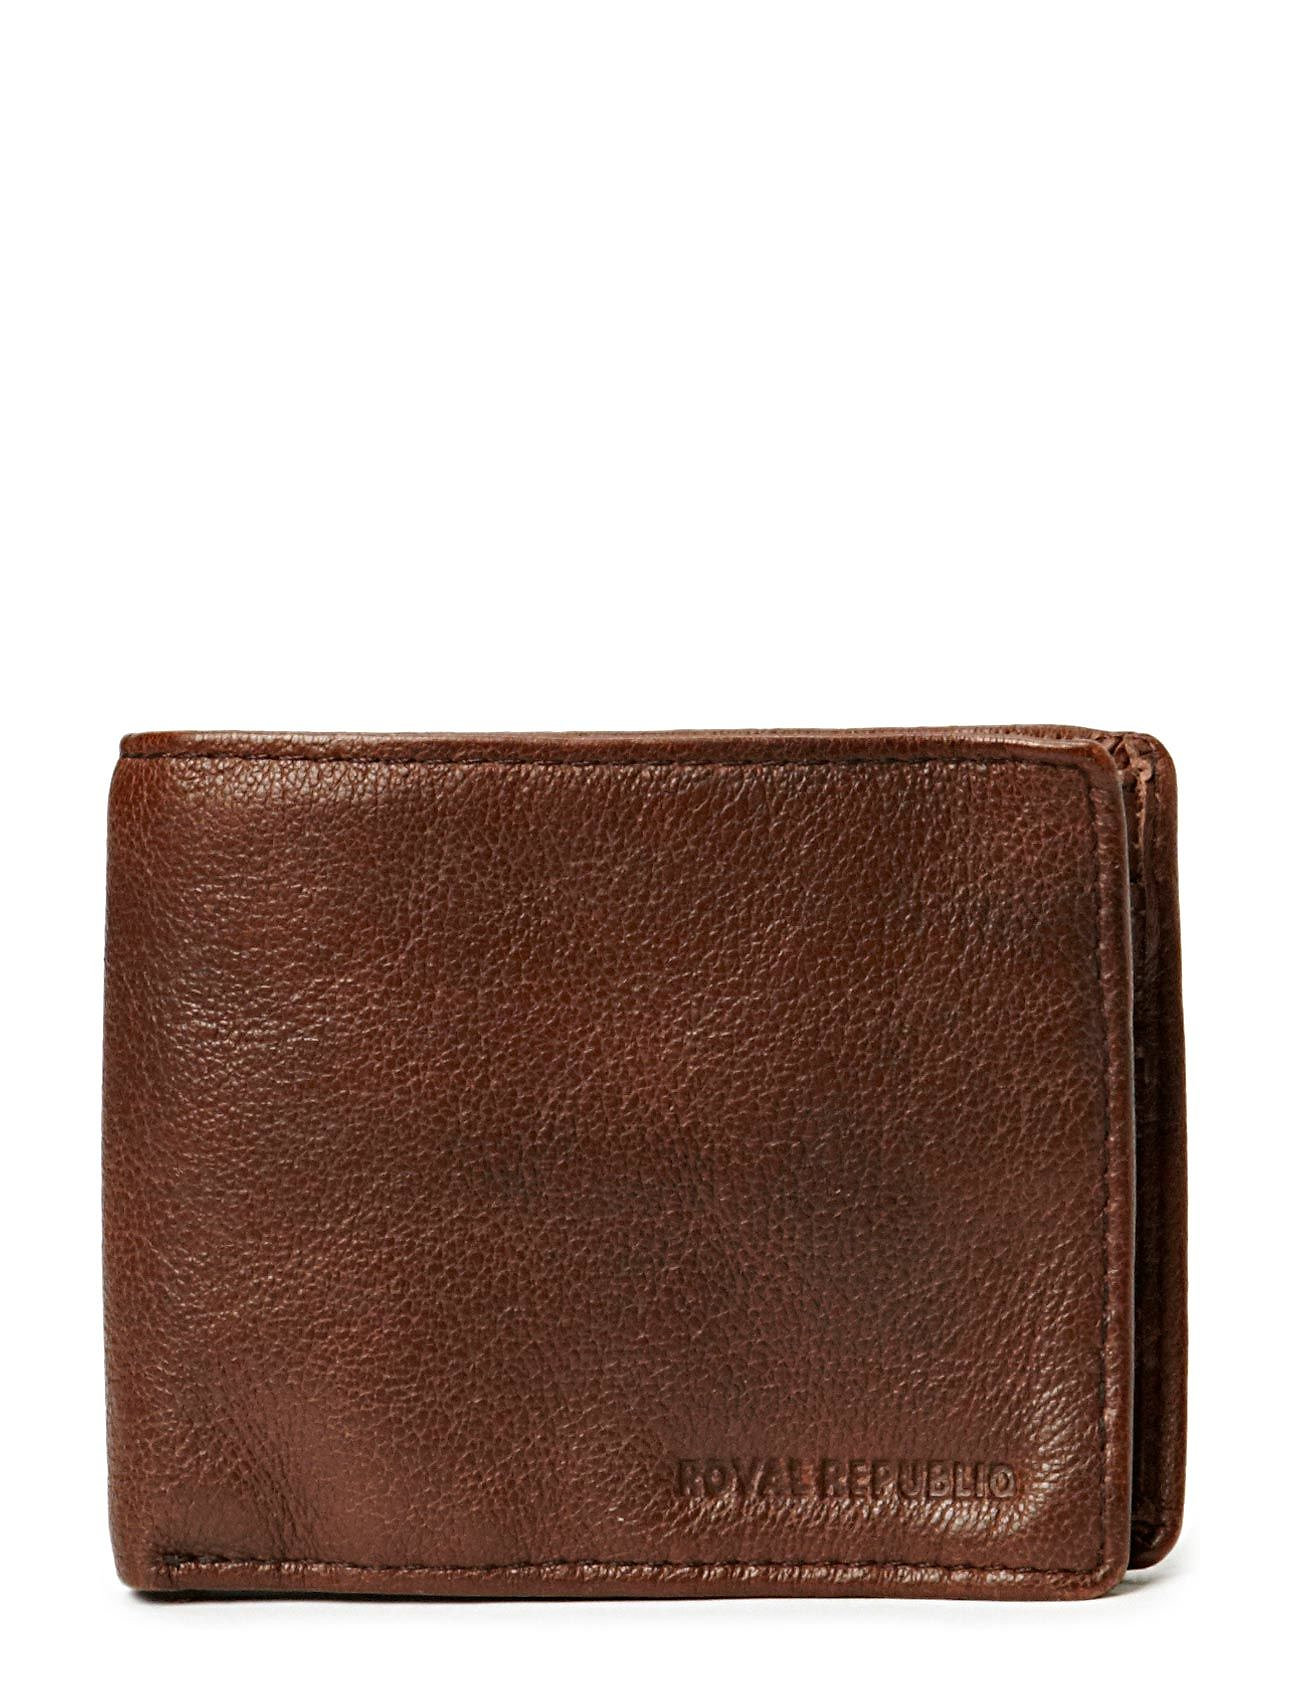 Royal RepubliQ Wayne Wallet - BROWN